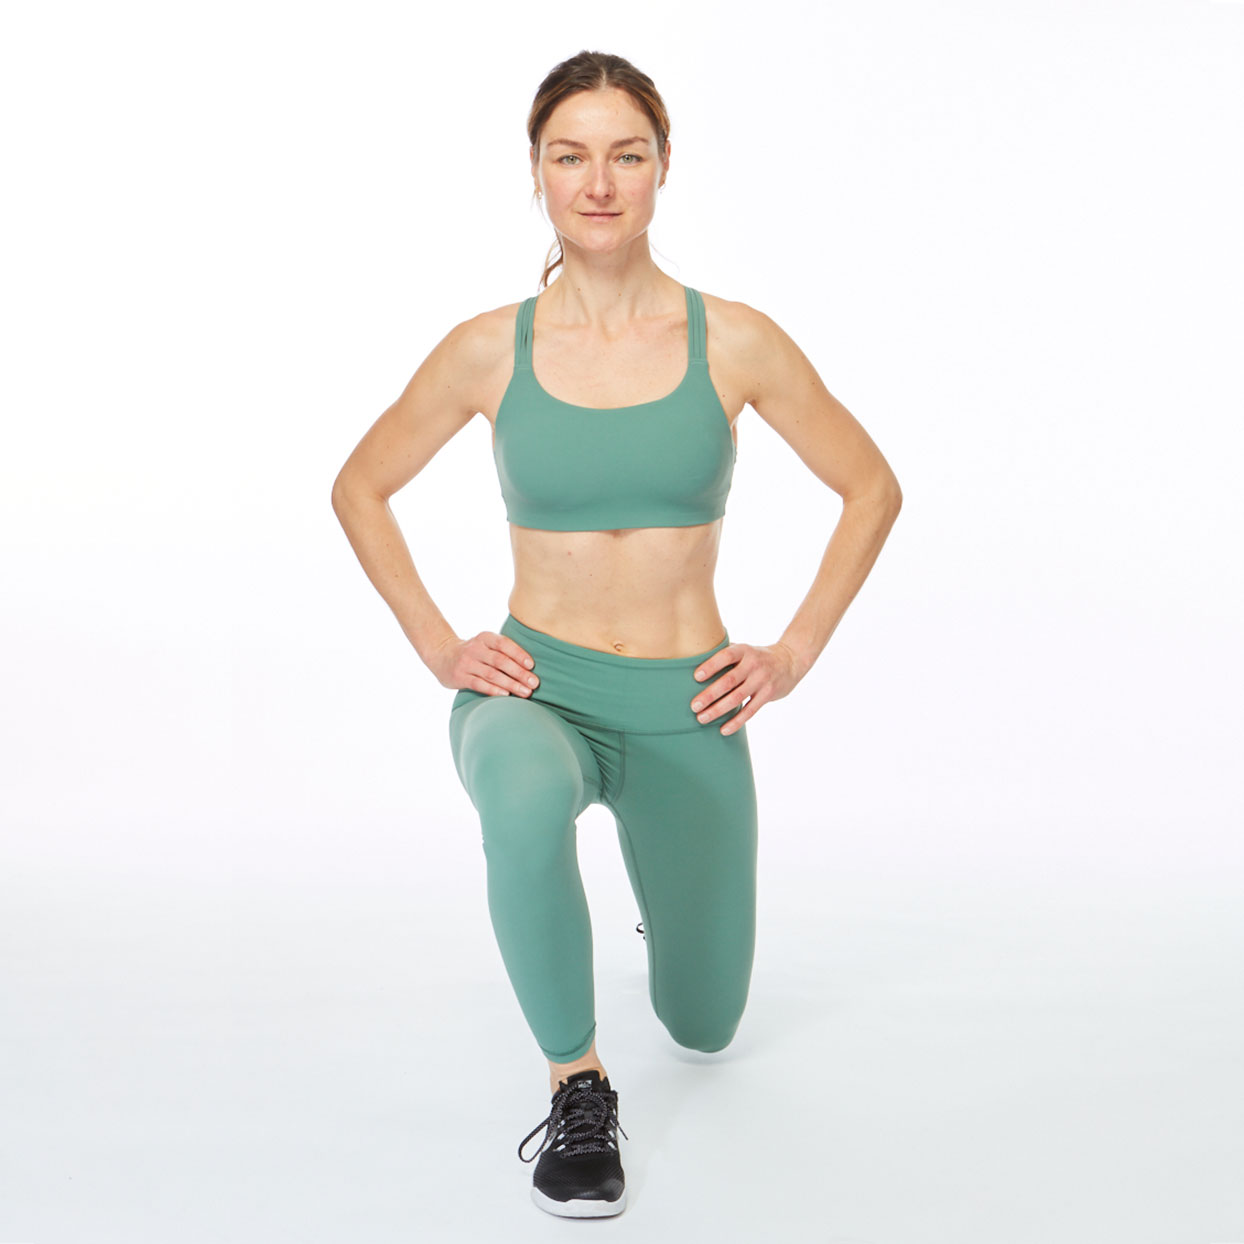 whats the best weight loss exercise